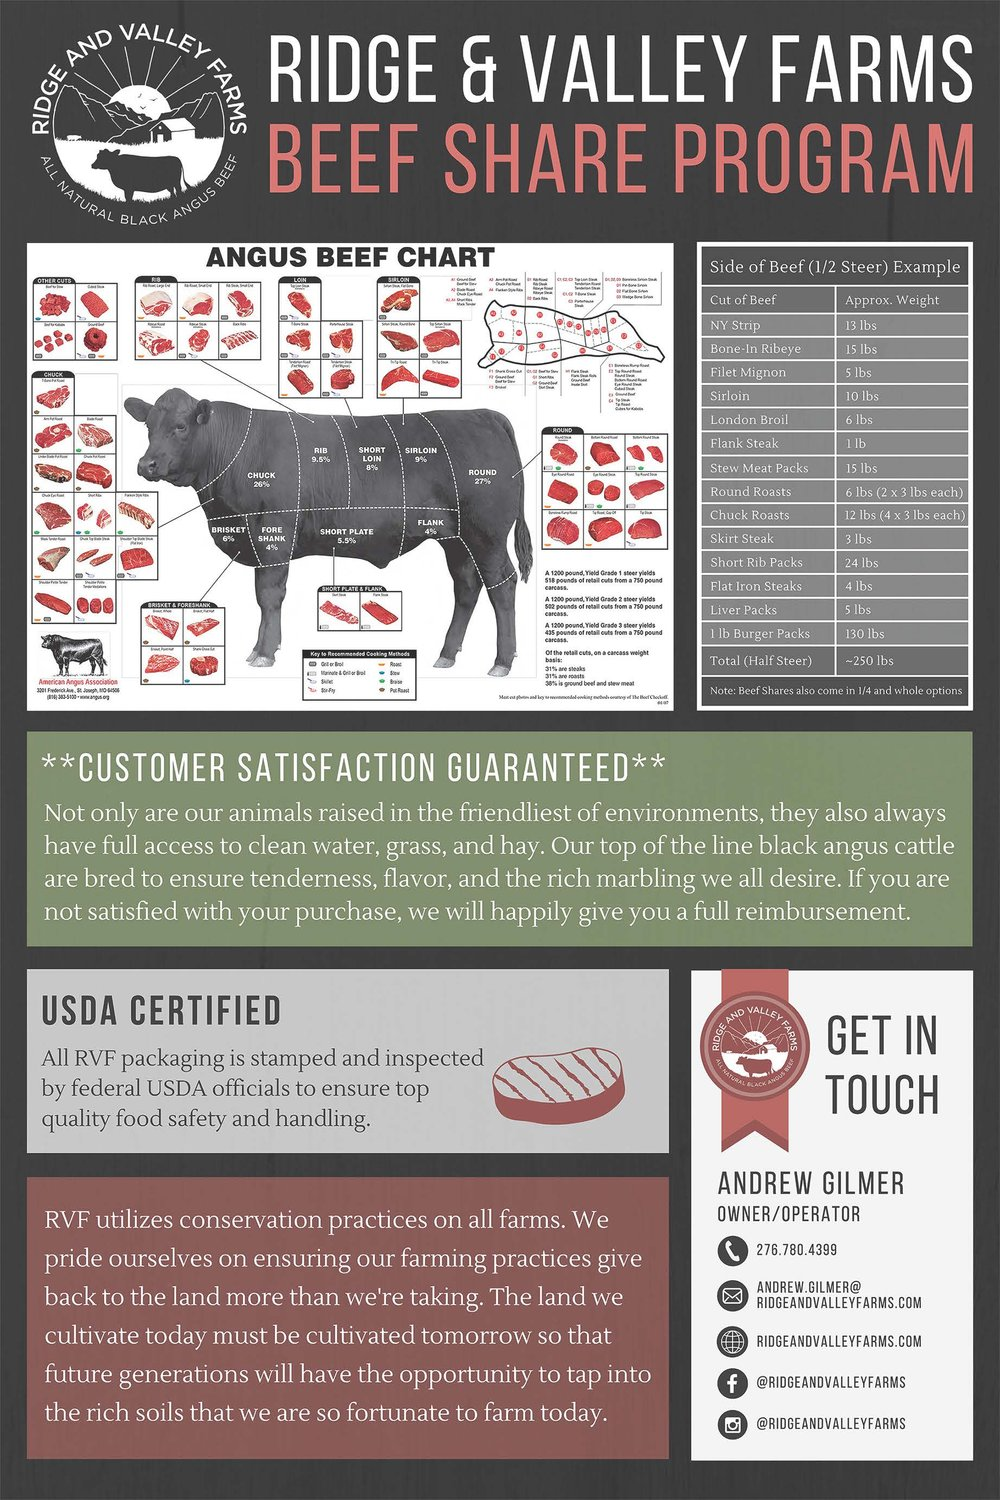 BEEF SHARES - At Ridge and Valley Farms, we do things a little differently...and that is a good thing. Part of our experience is allowing you to be a part of the process. With our program, we specialize in BEEF SHARES - a unique experience where you get a share of an entire steer. These are sold as quarters, halves, and whole shares - meaning you get an equal portion of ALL of the cuts from the steer (steaks, roasts, burger, etc).We raise the animals right here in southwest Virginia. They're processed here locally, too. And through this program, you get the benefit of purchasing a locally raised animal right here where you live.At Ridge and Valley Farms, we do things a little differently...and that is a good thing. Part of our experience is allowing you to be a part of the process. With our program, we specialize in BEEF SHARES - a unique experience where you get a share of an entire steer. These are sold as quarters, halves, and whole shares - meaning you get an equal portion of ALL of the cuts from the steer (steaks, roasts, burger, etc).We raise the animals right here in southwest Virginia. They're processed here locally, too. And through this program, you get the benefit of purchasing a locally raised animal right here where you live.RESERVE NOW